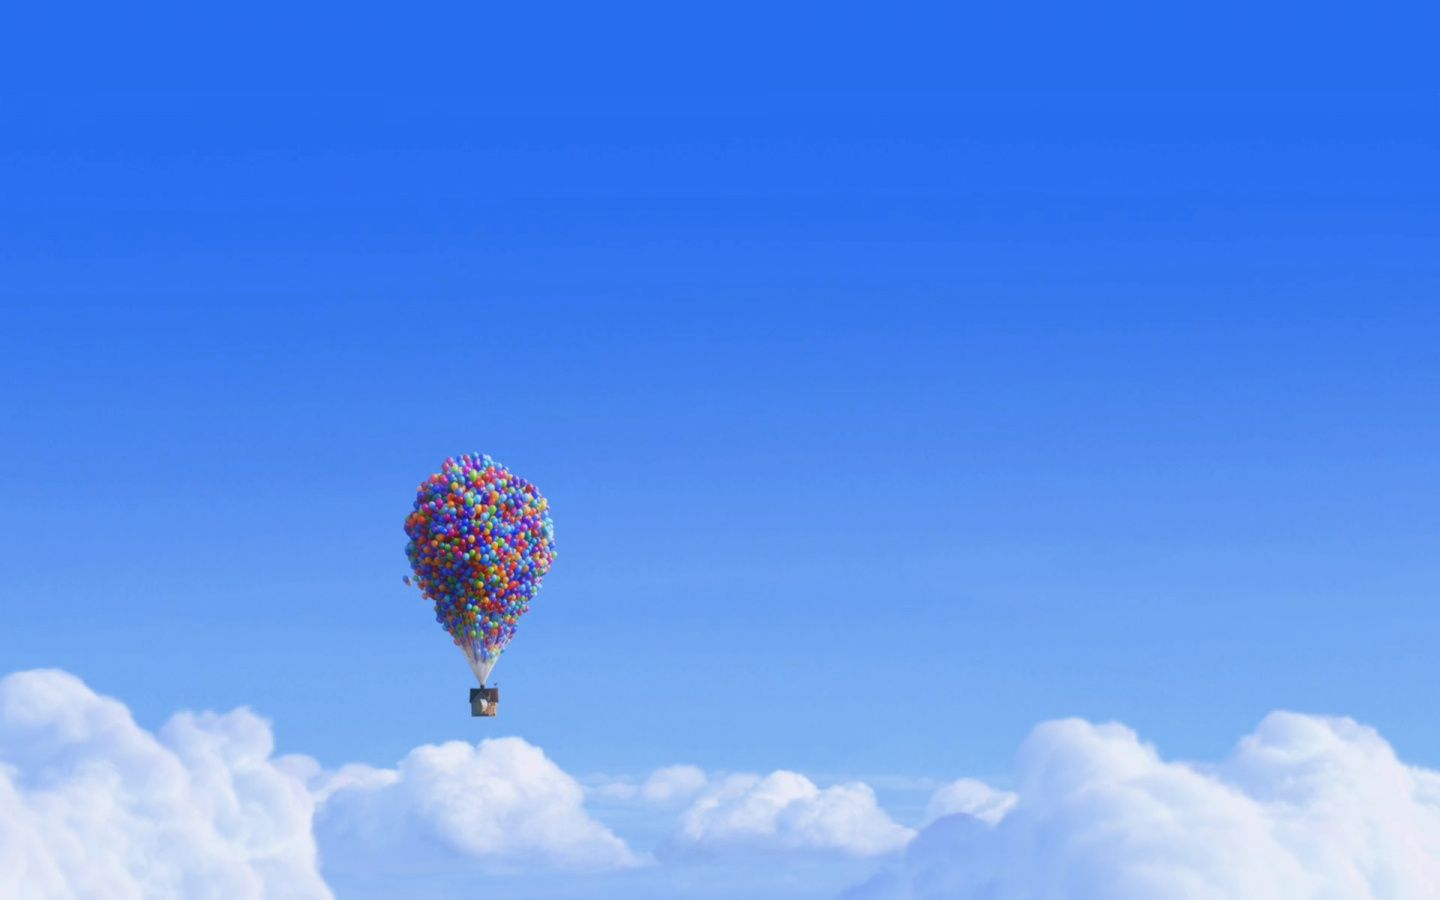 1440x900 Pixar Up Movie Desktop Pc And Mac Wallpaper Fondo De Pantalla Mac Fondos Pc Up House